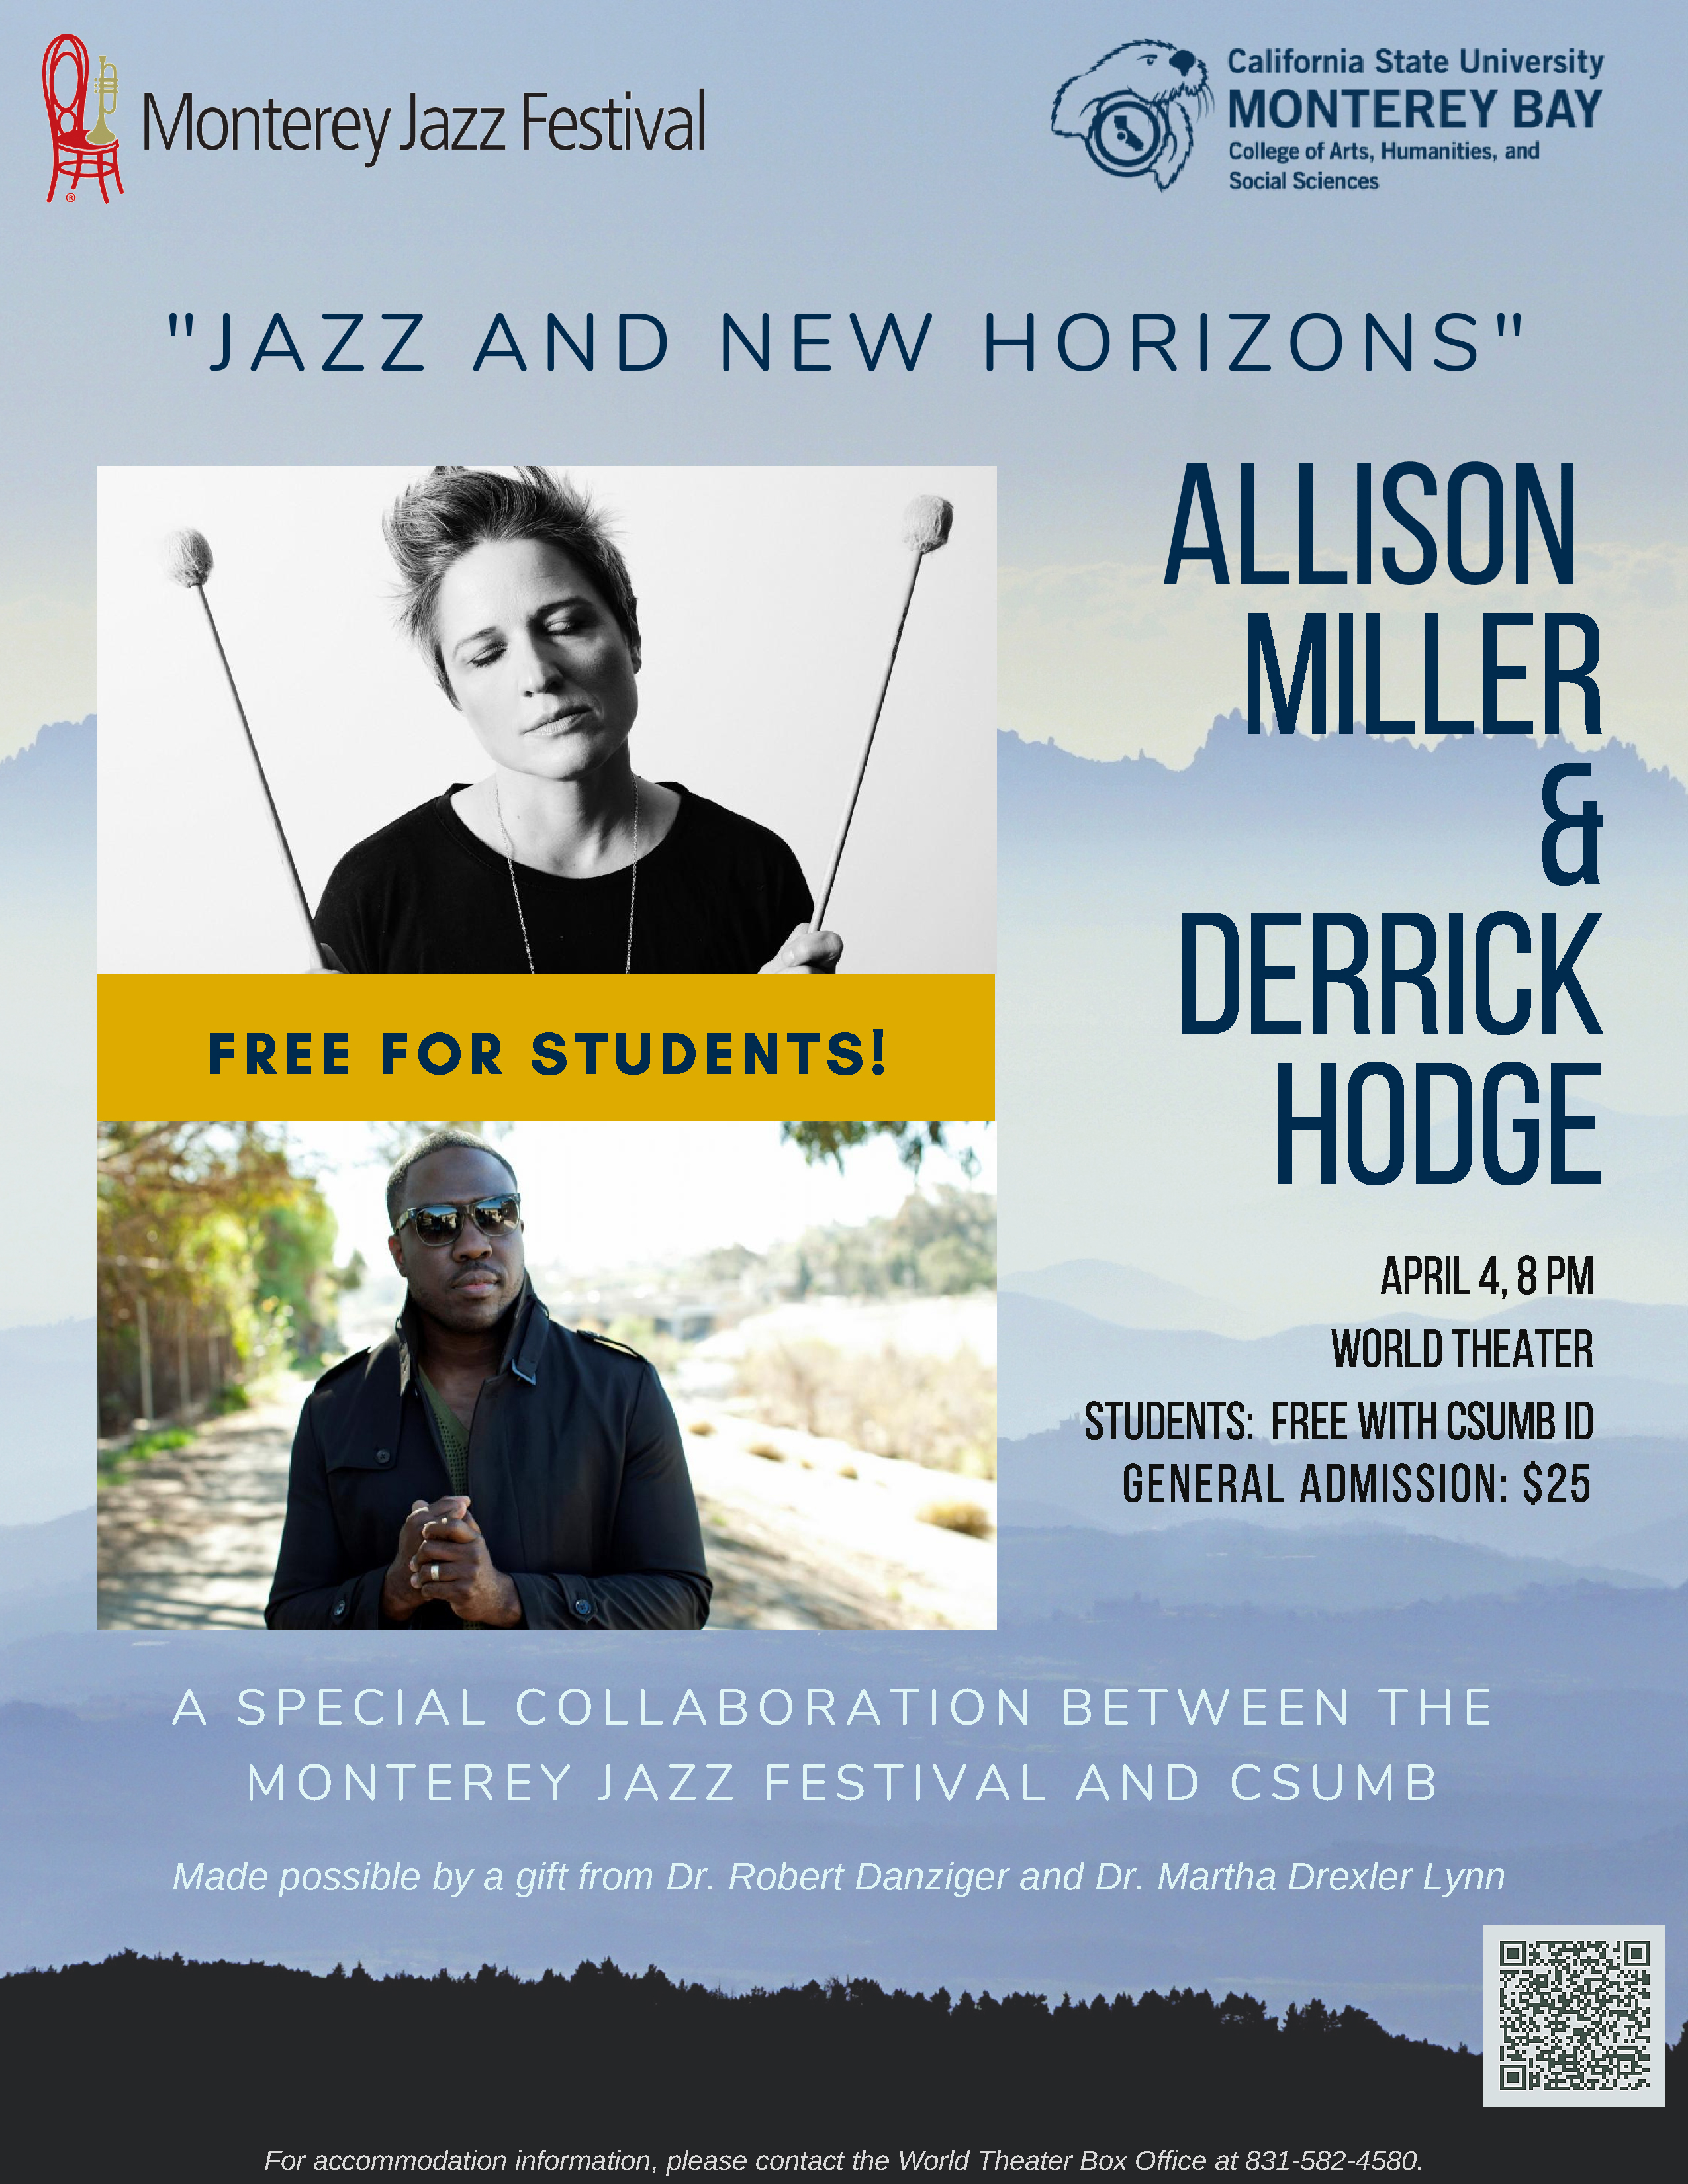 Allison Miller Videos jazz and new horizons concert at csumb's world theater